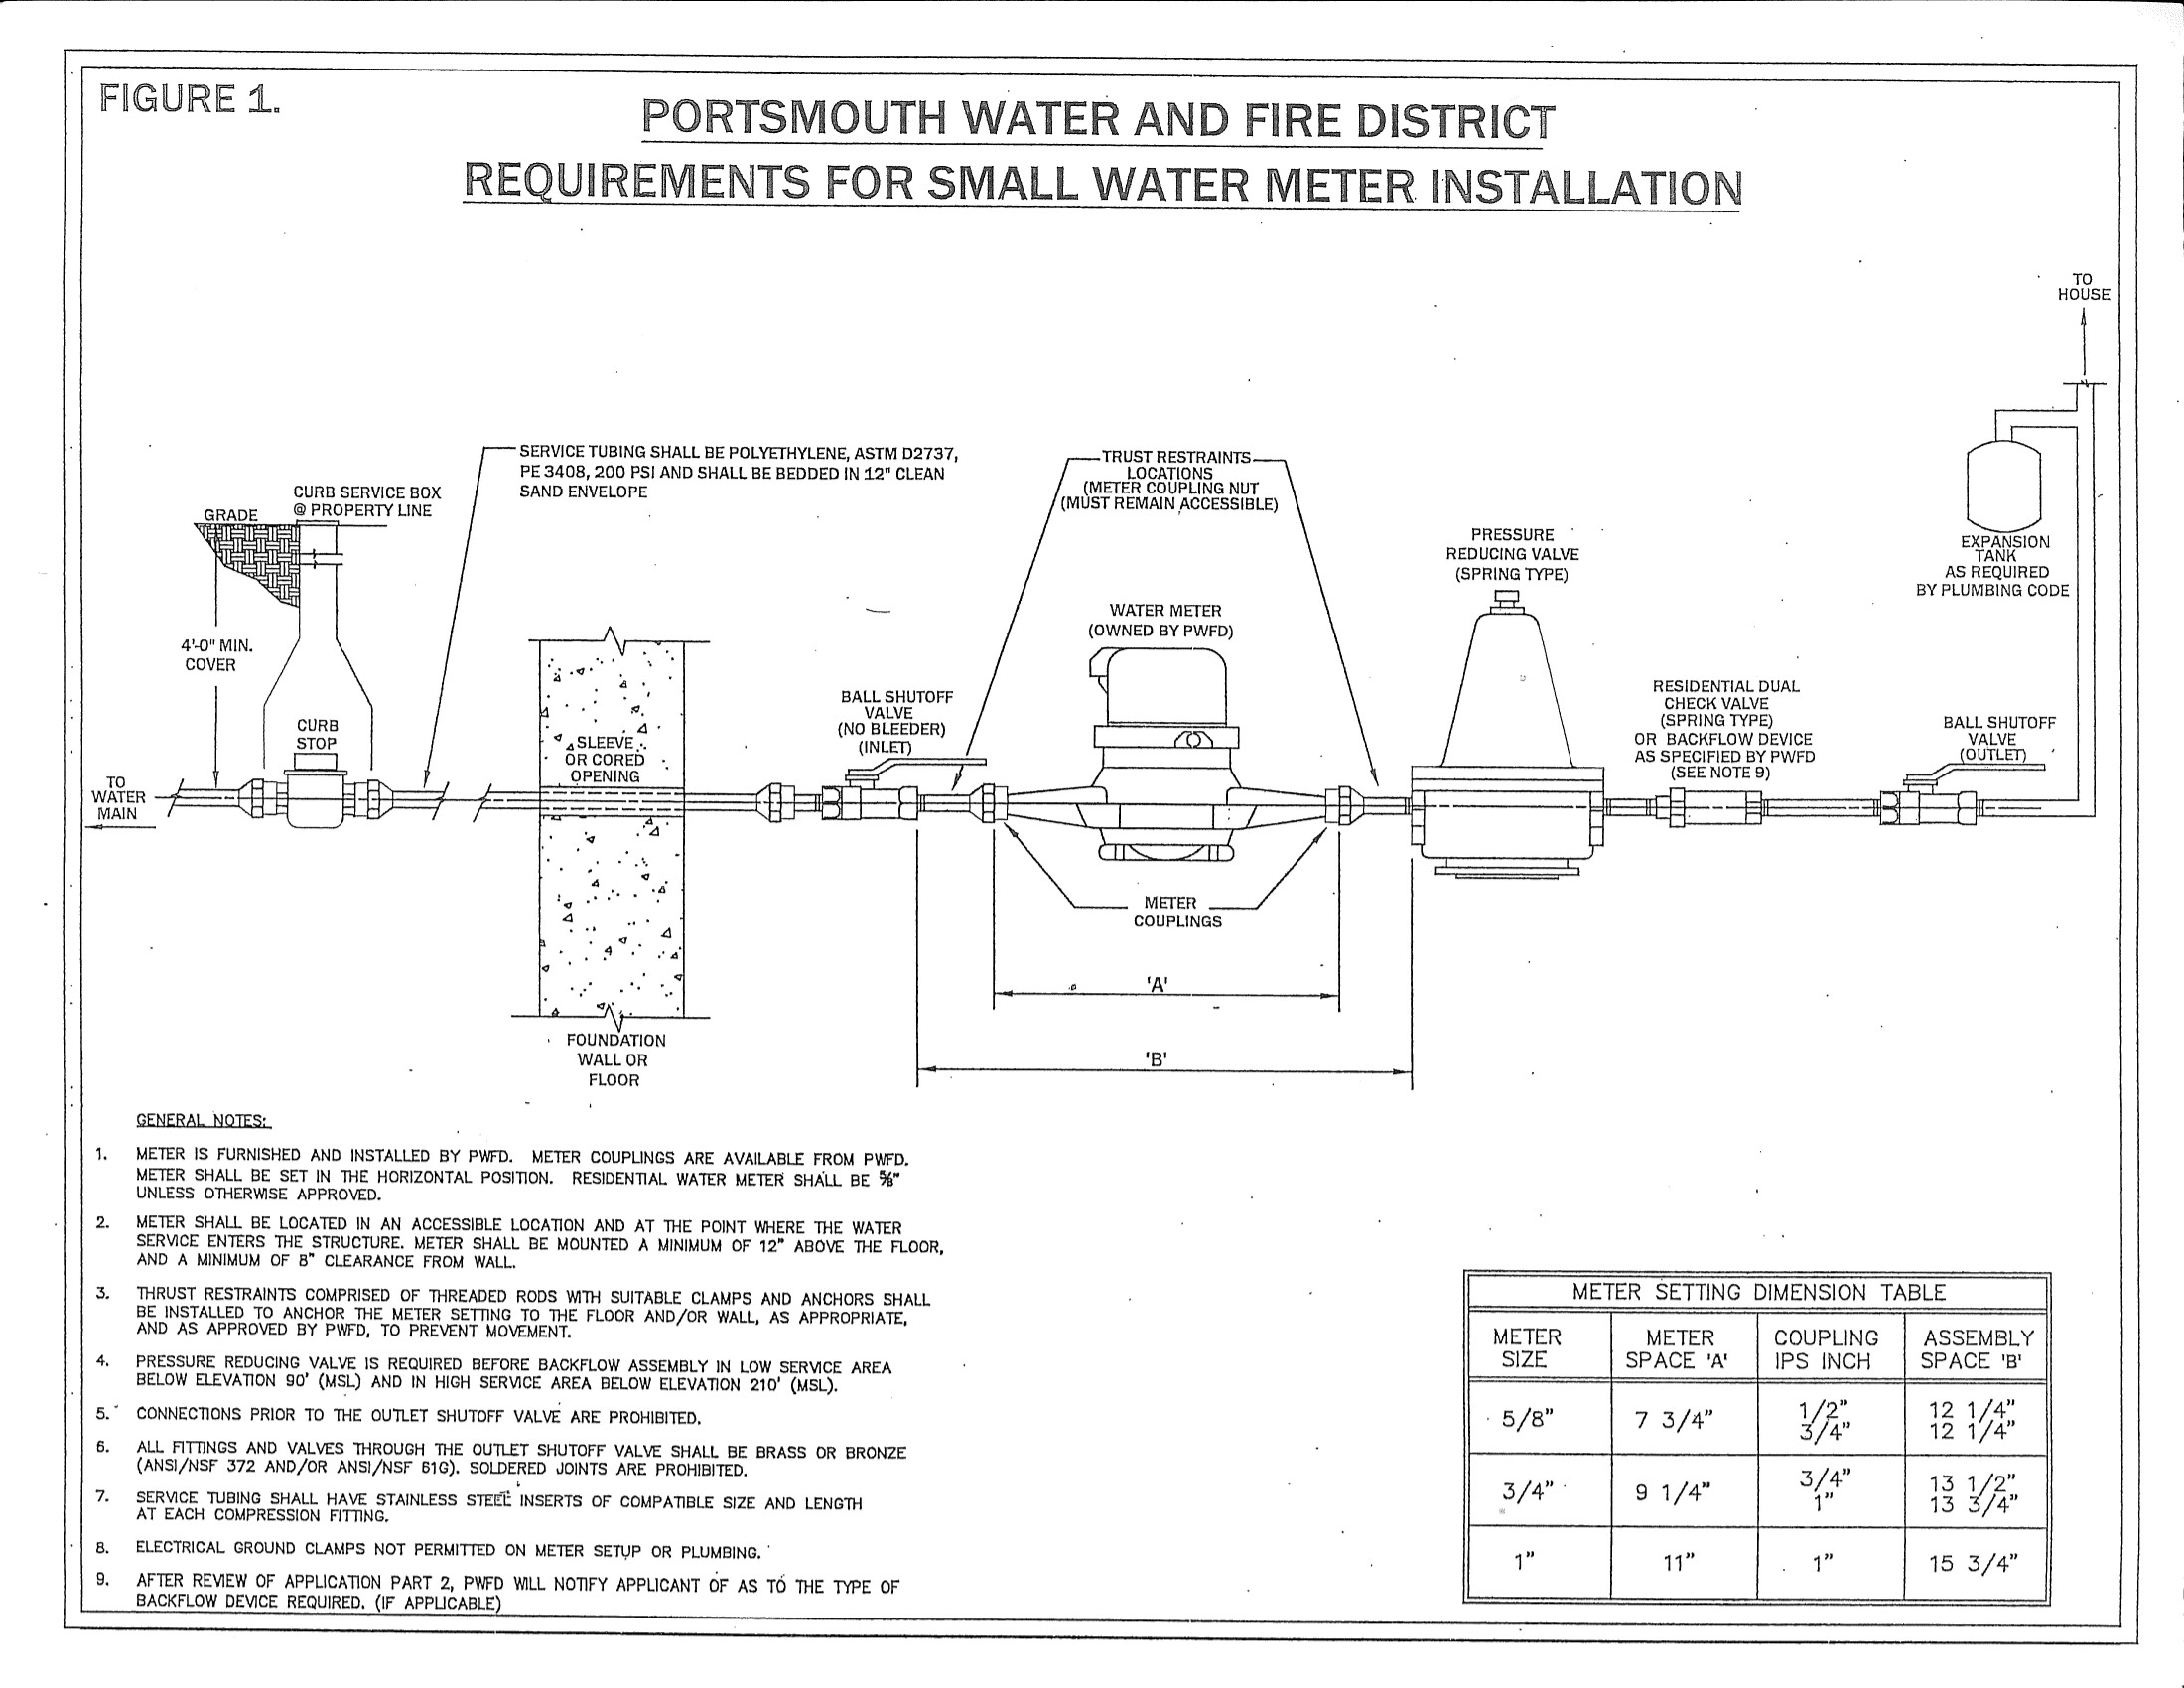 Small Water Meter Installation Portsmouth Water And Fire